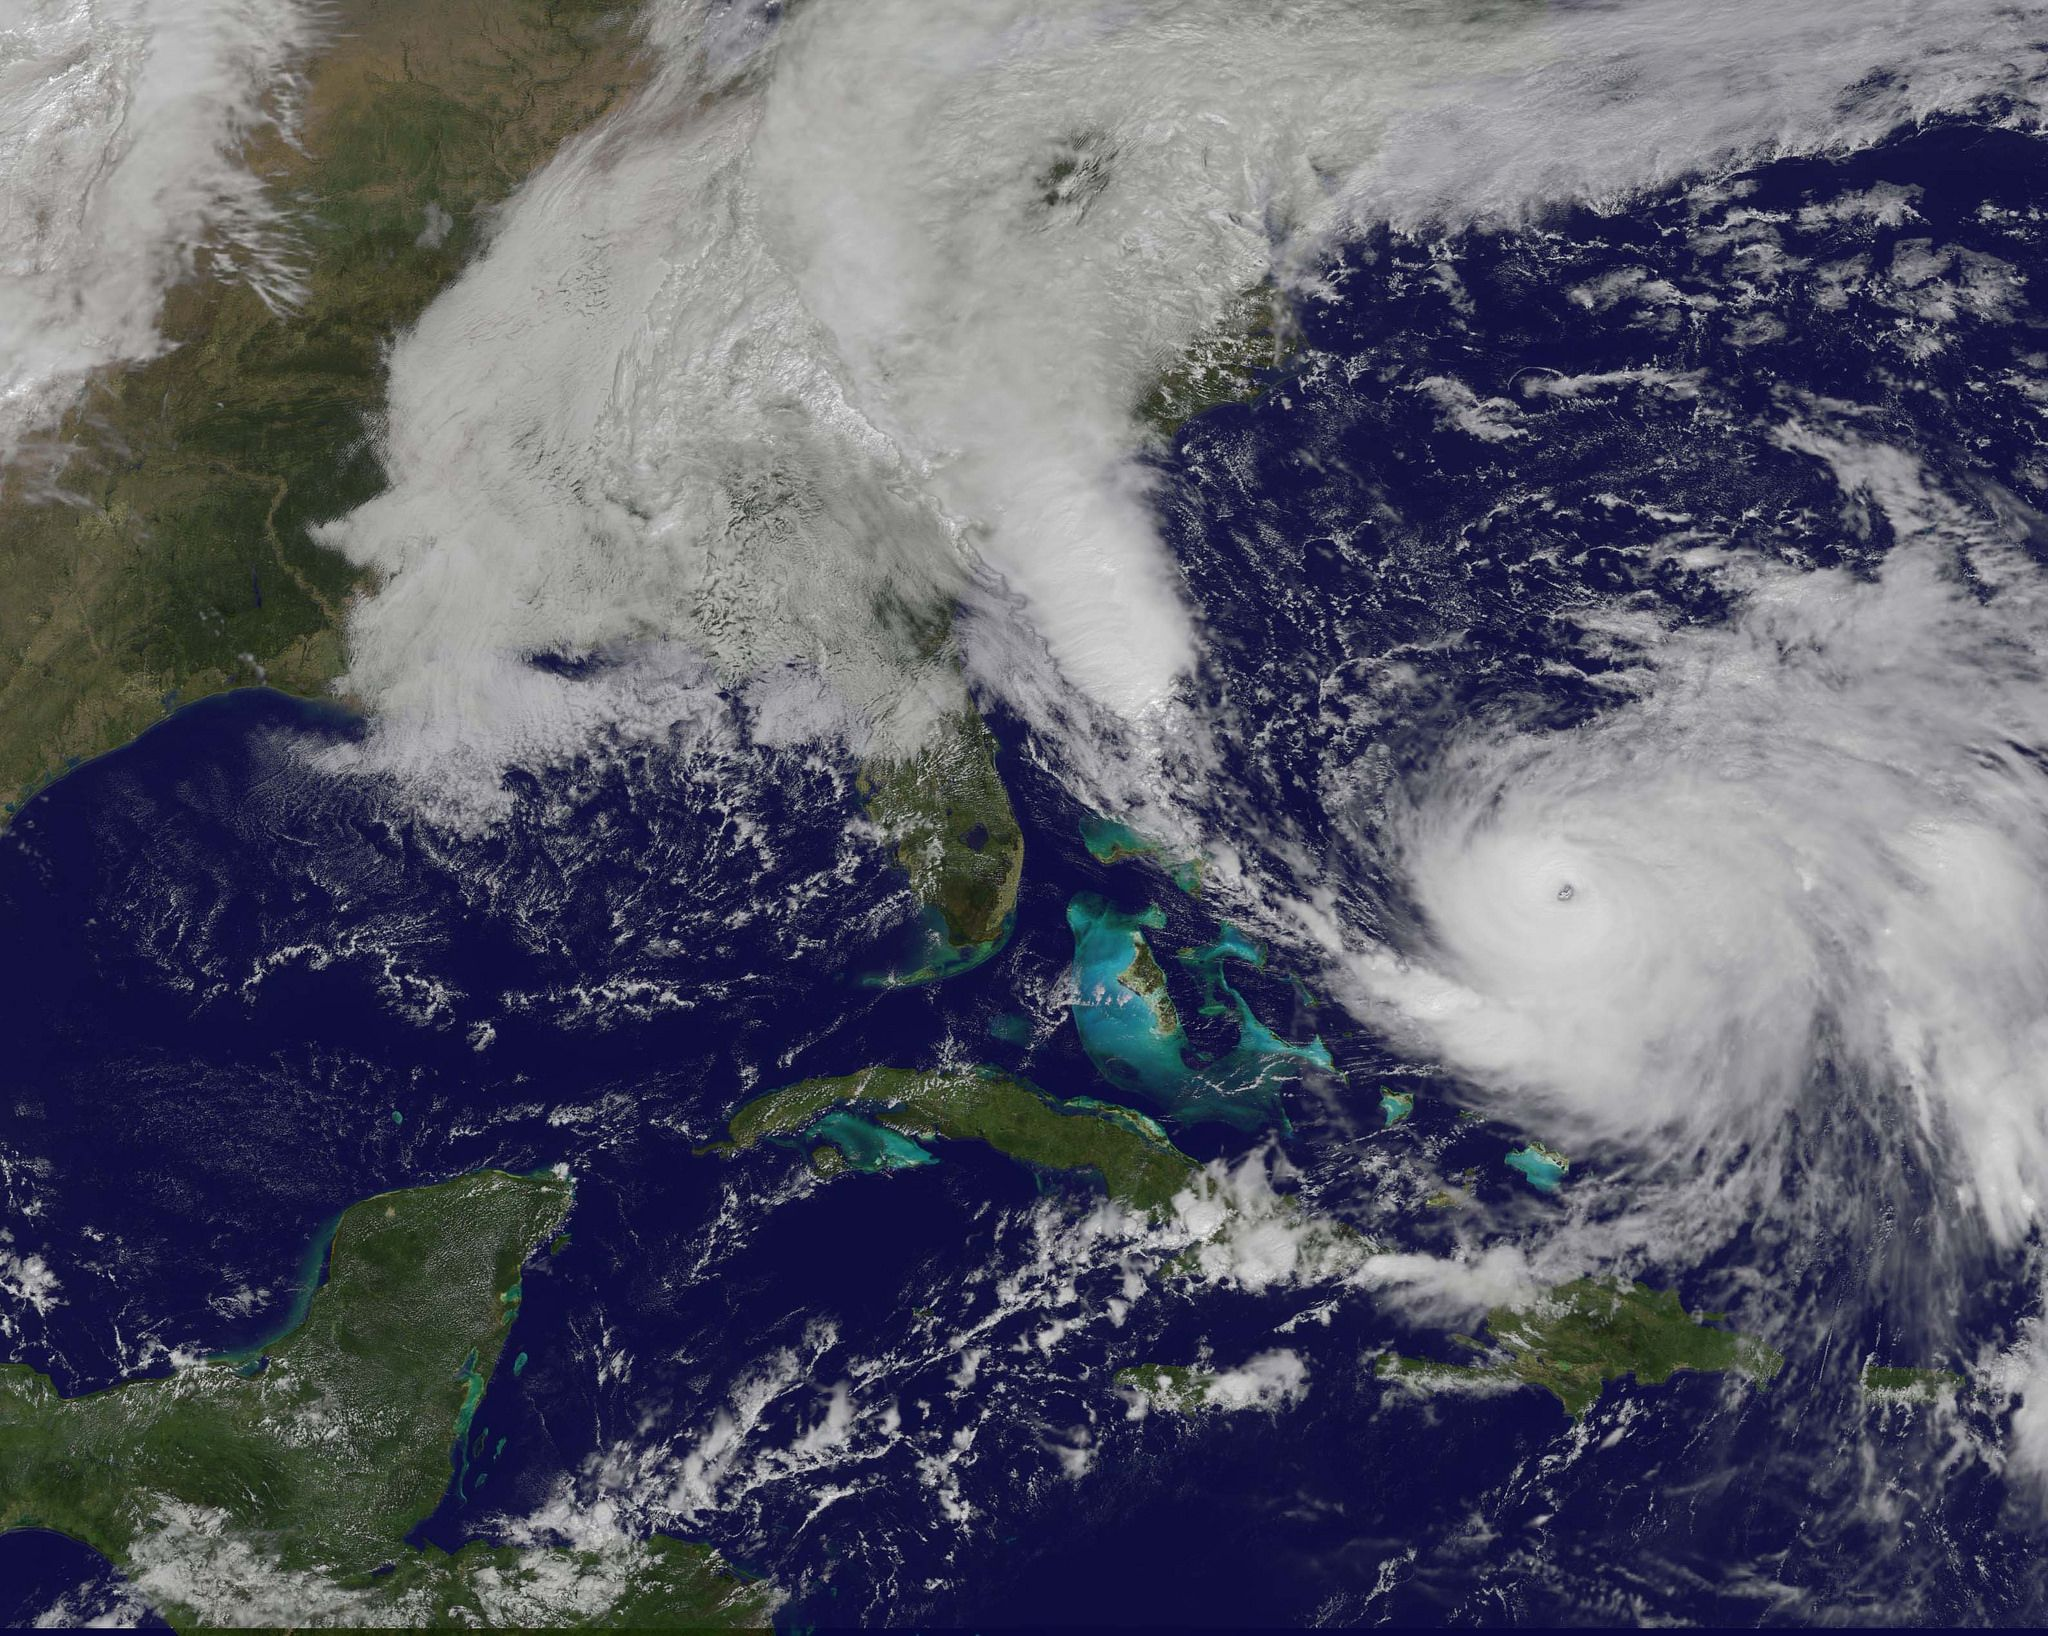 Joaquin Moves Away From East Coast Nasa Images Solar System Exploration Hurricanes And Tornadoes